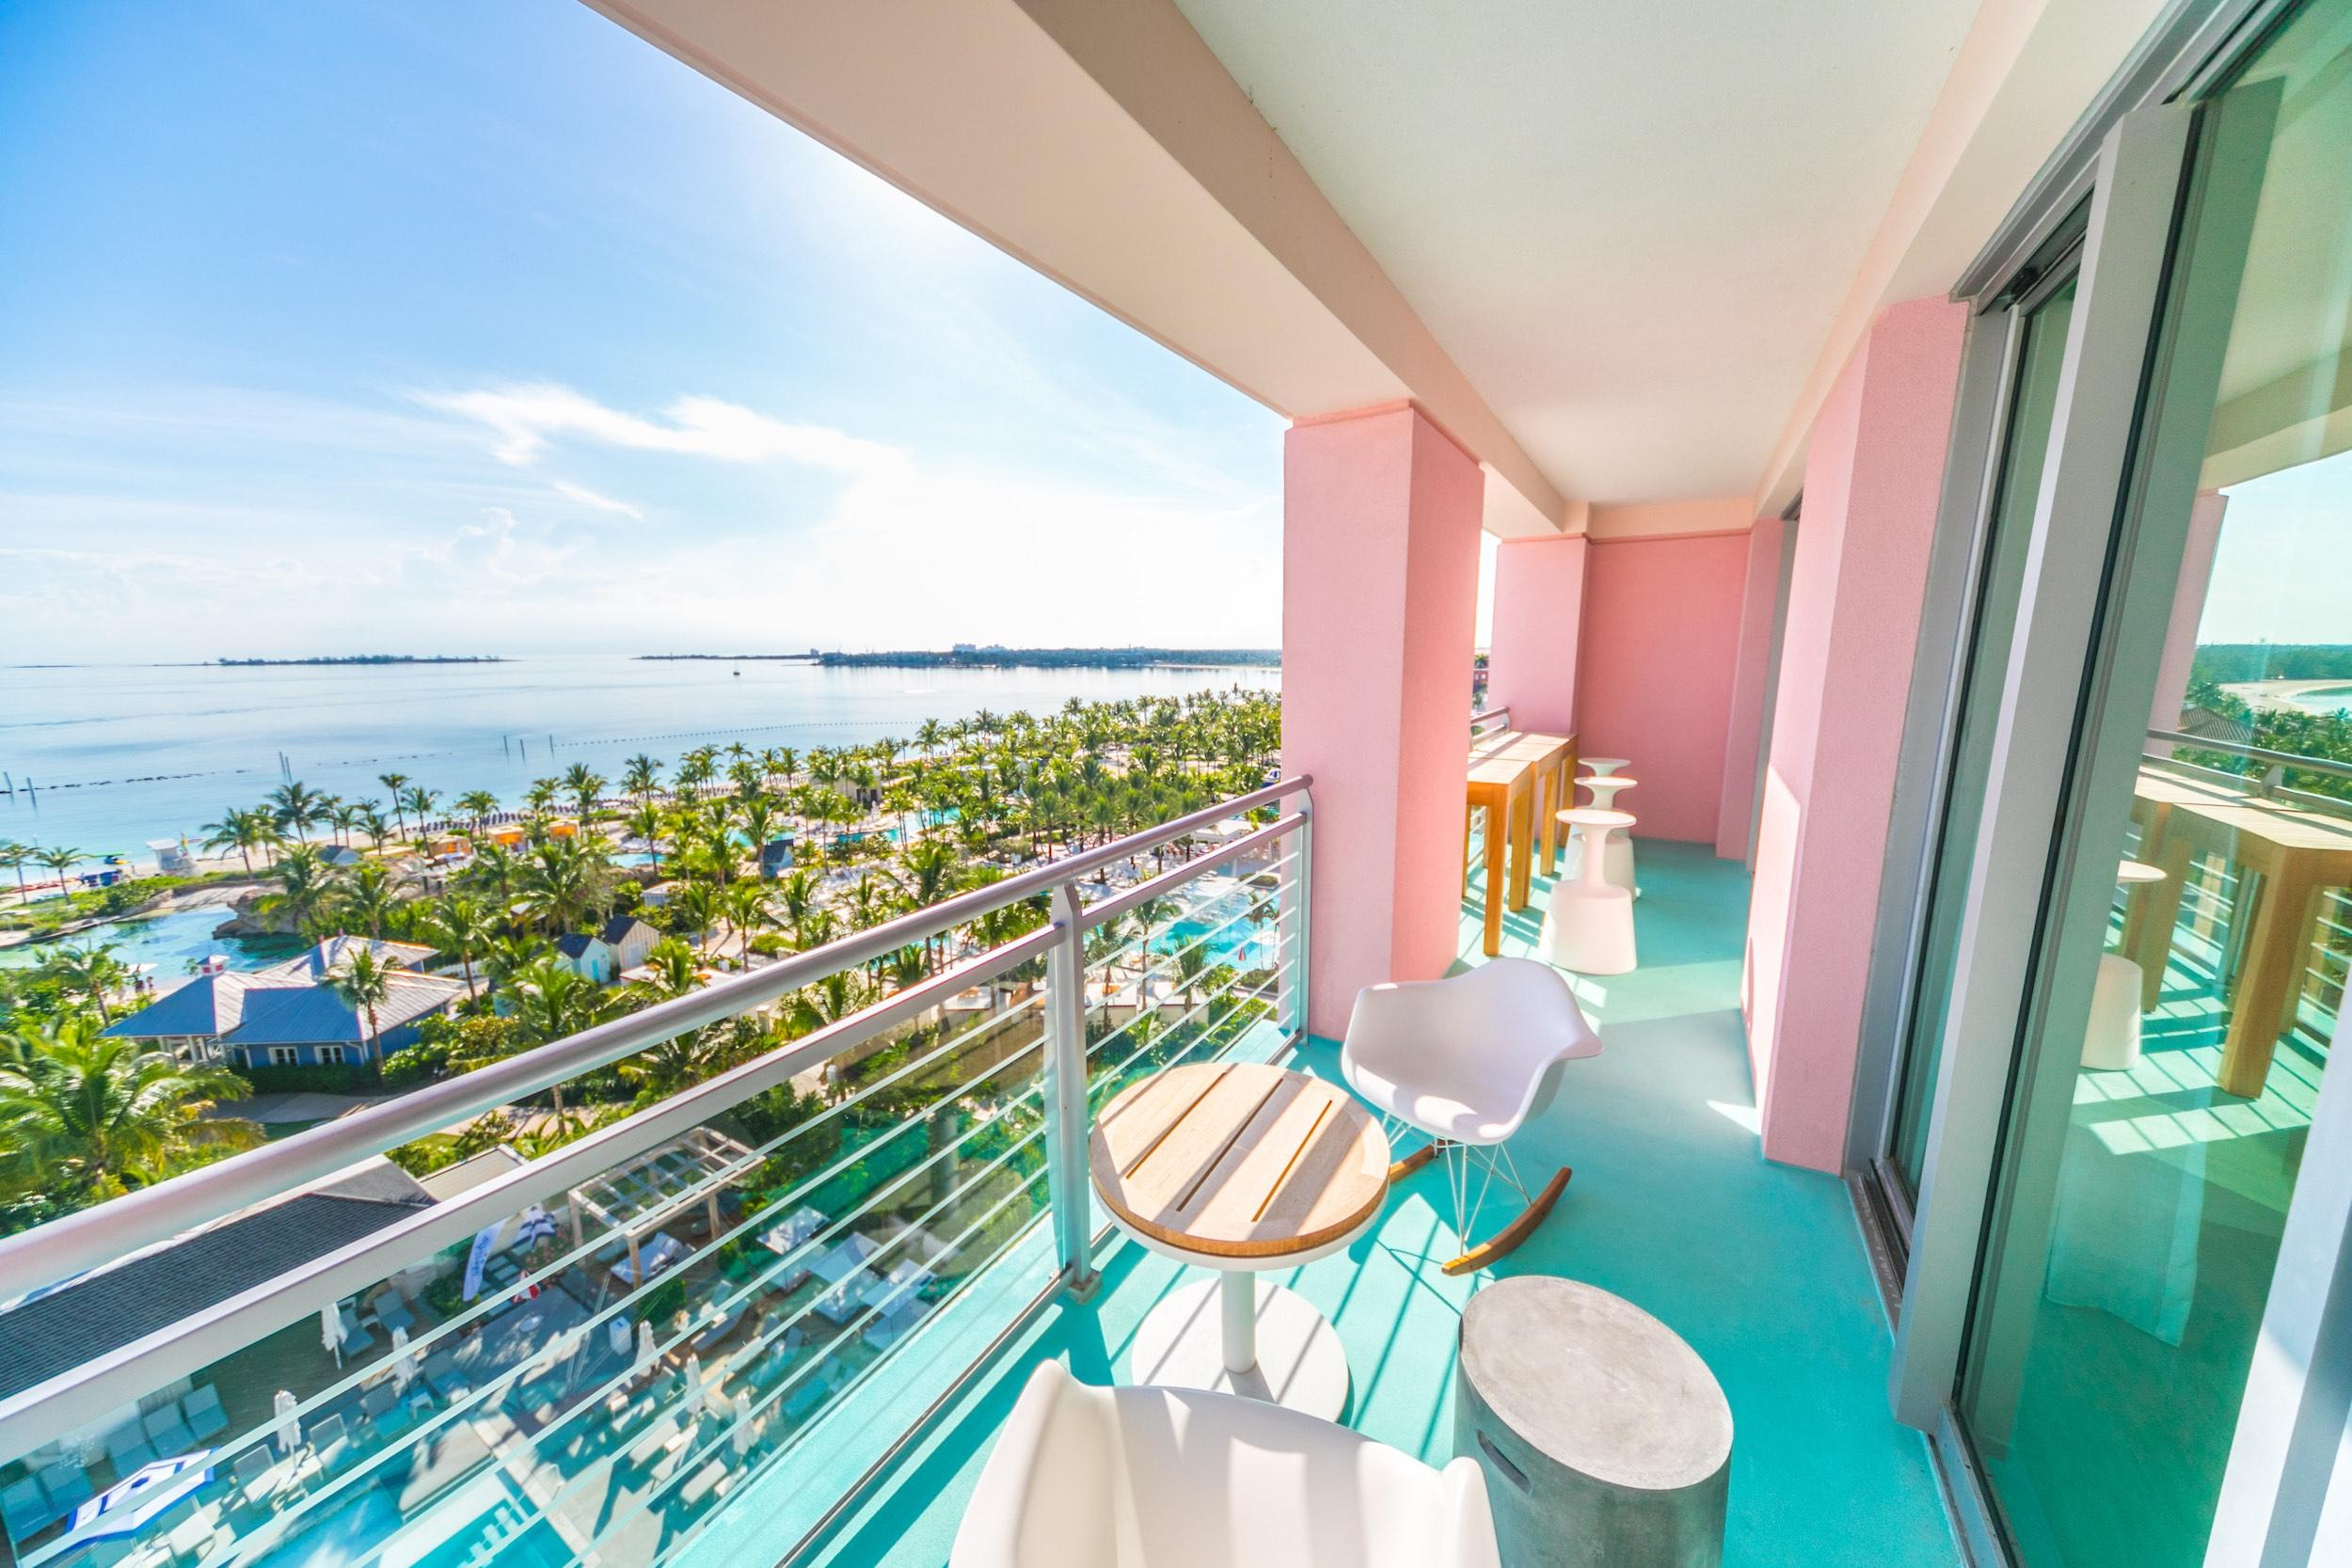 Pink and turquoise balcony overlooking tropical ocean